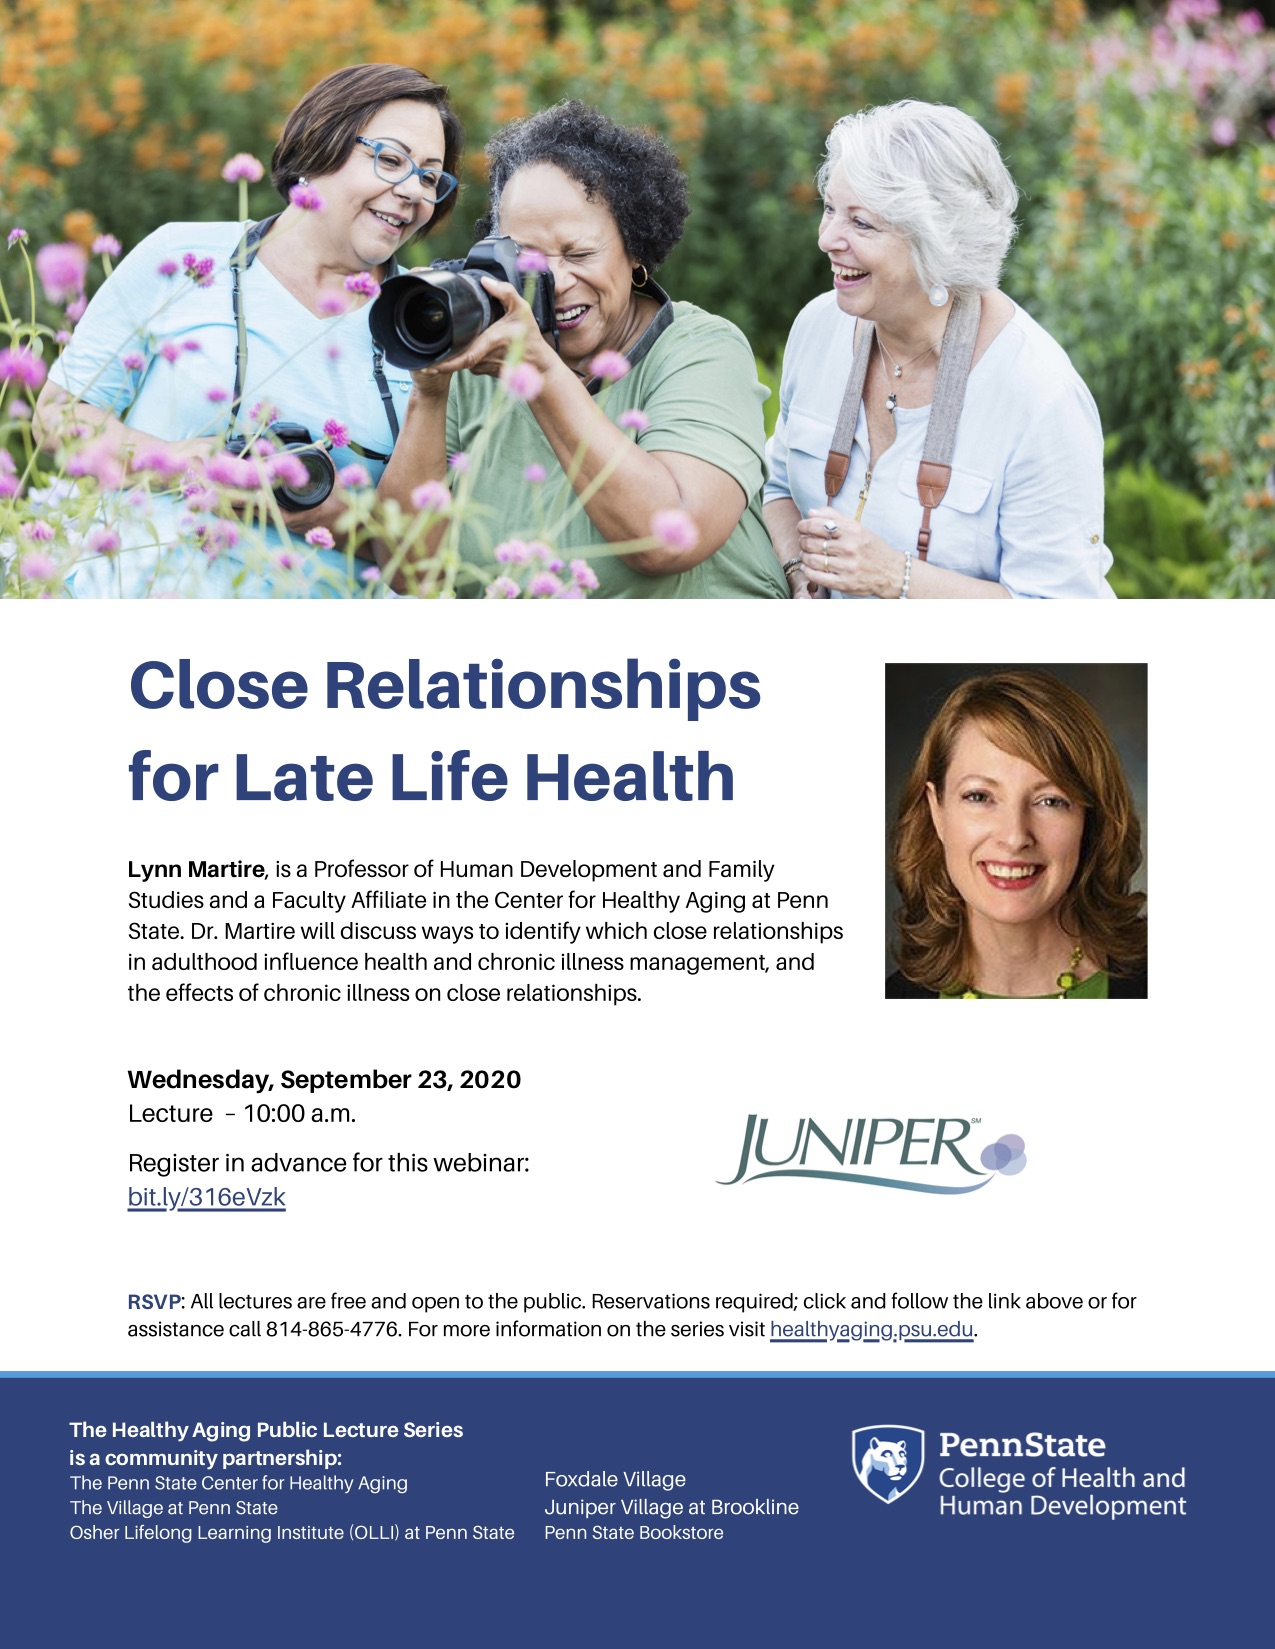 Close Relationships for Late Life Health Flyer.